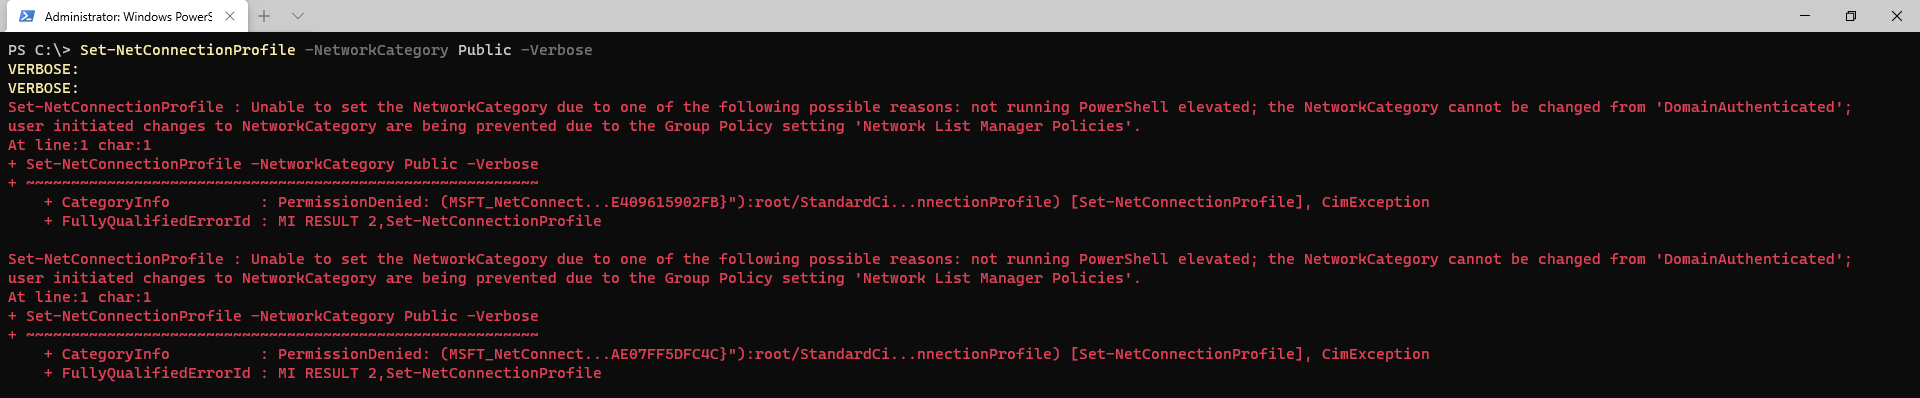 Group Policy blocking network profile change.